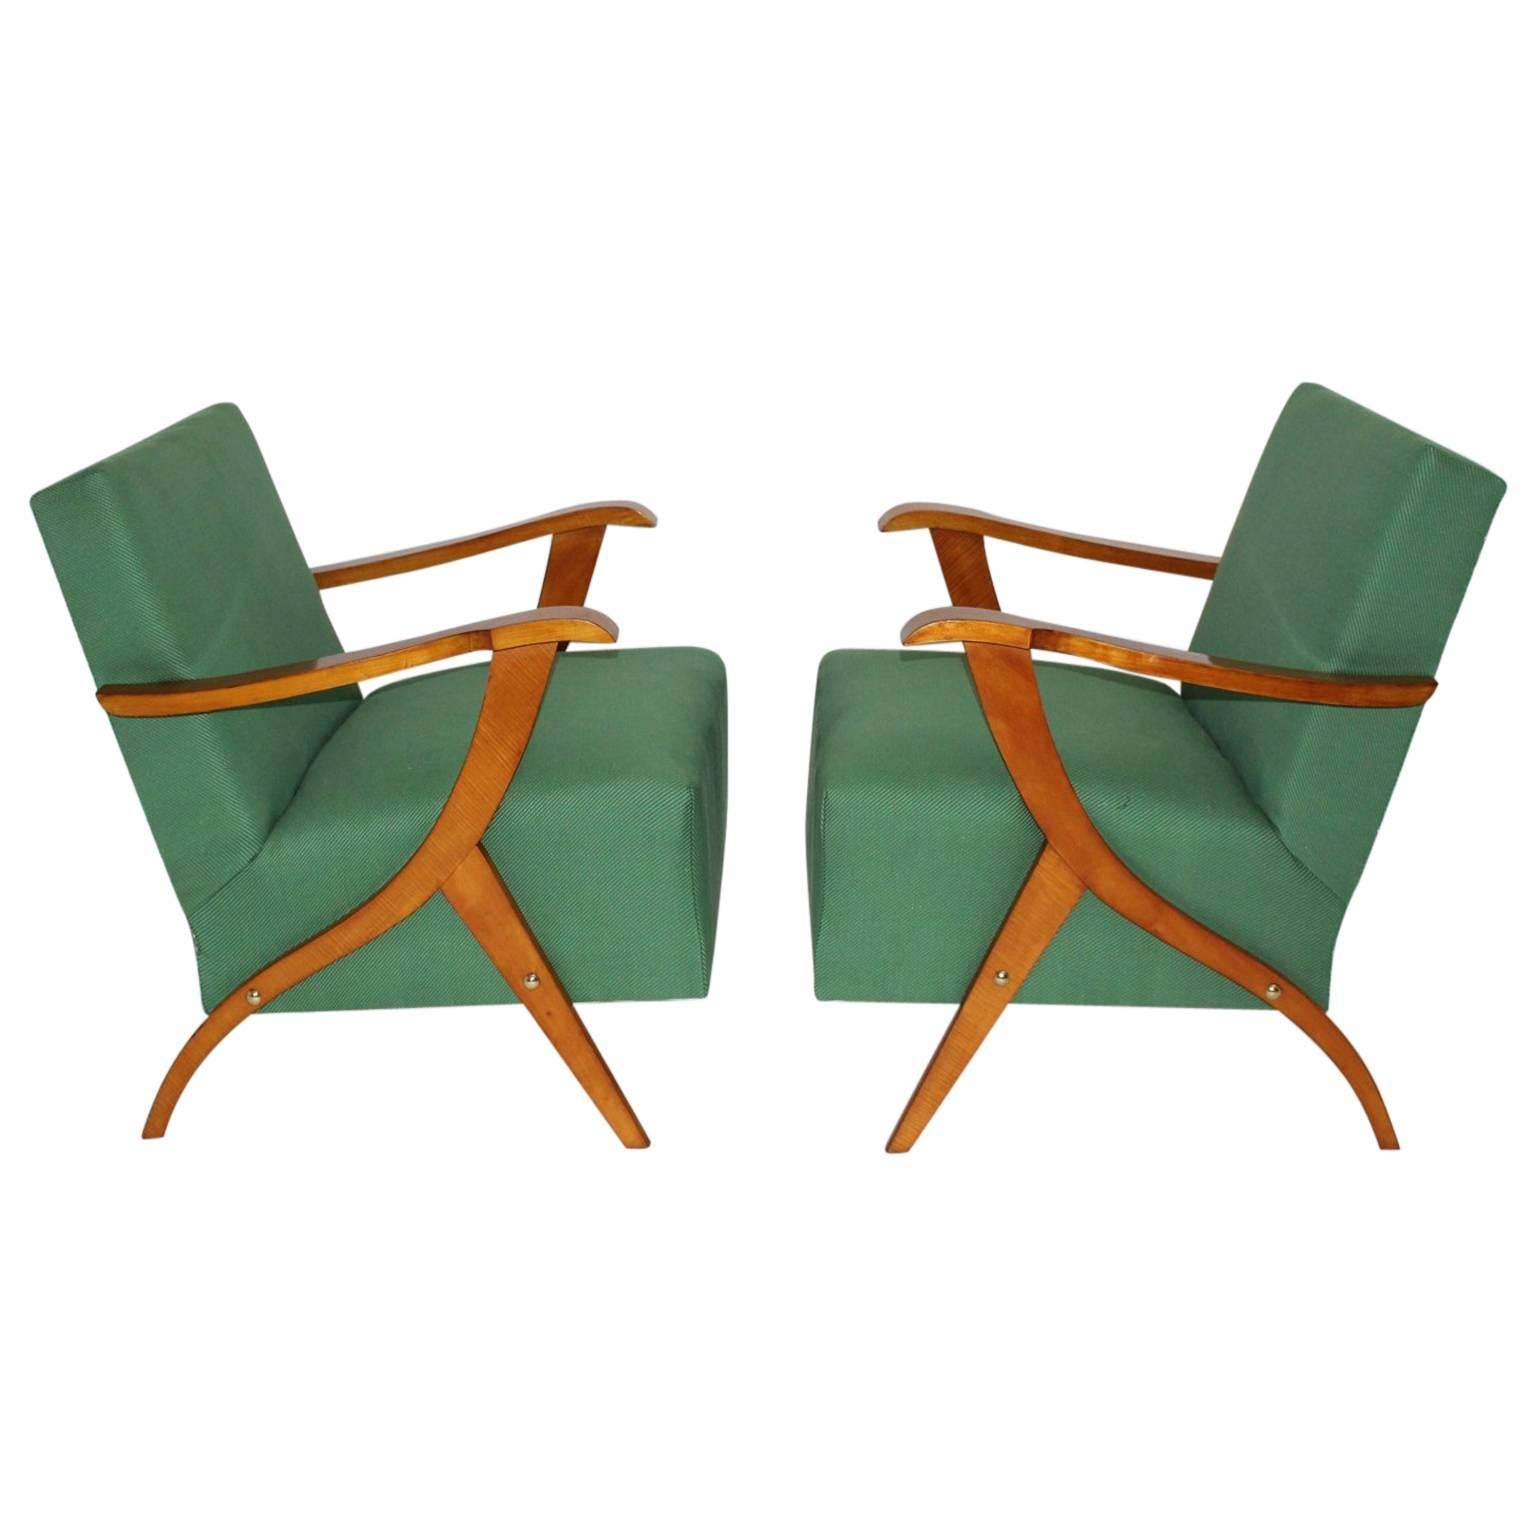 Mid Century Modern Vintage Green Fabric and Wood Lounge Chairs, 1950s Italy